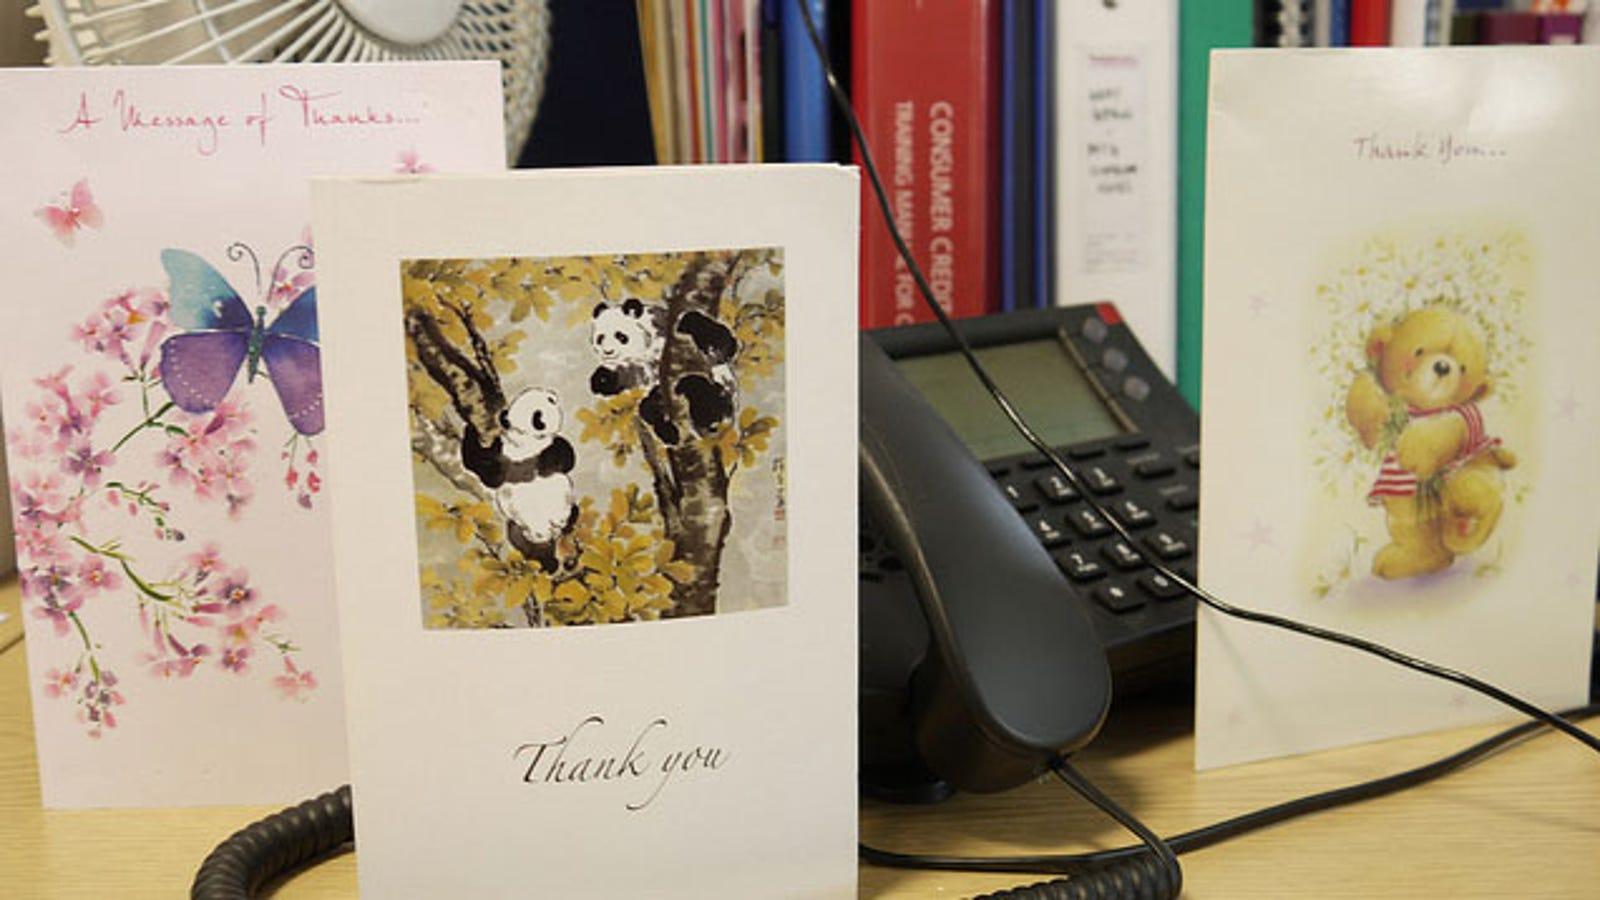 Send A Thank You Letter After A Job Rejection